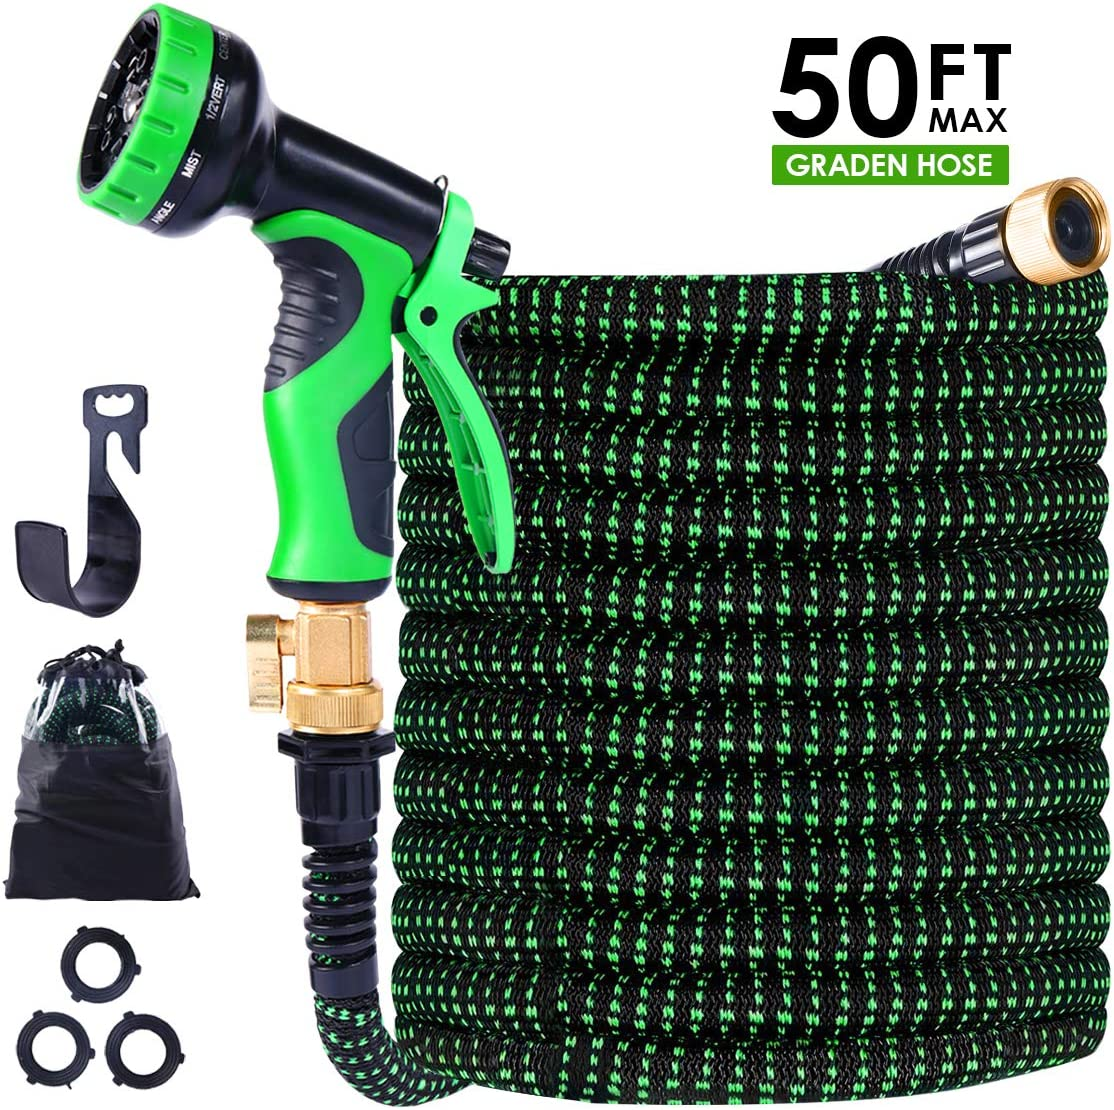 "TONGLUBAO Garden Hose Expandable, 50ft Leakproof Garden Hose with 9 Function Nozzle, Flexible Water Hose with Durble 3-Layers Latex Core, 3/4"" Solid Brass Fittings, Premium 3750D Fabric"